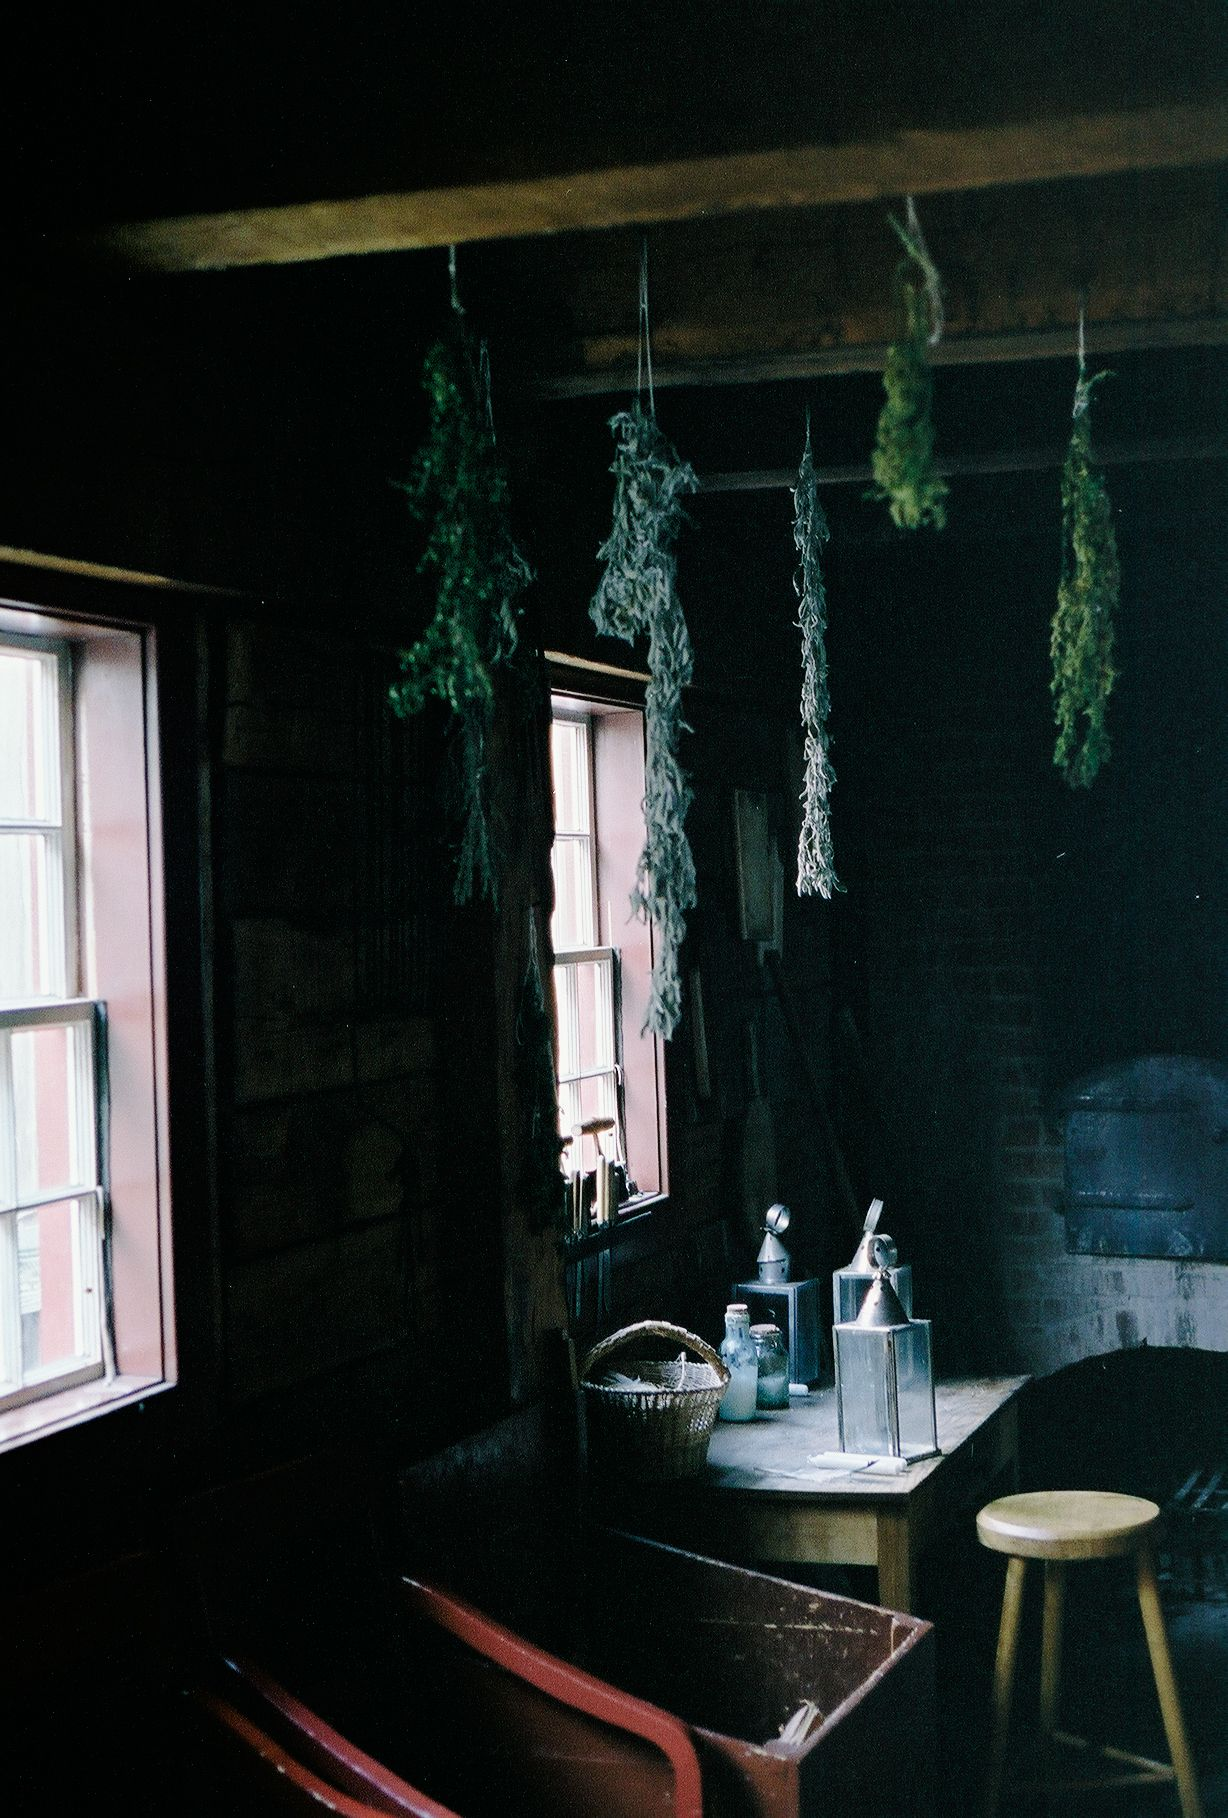 // hanging herbs from the ceiling [tim roth]